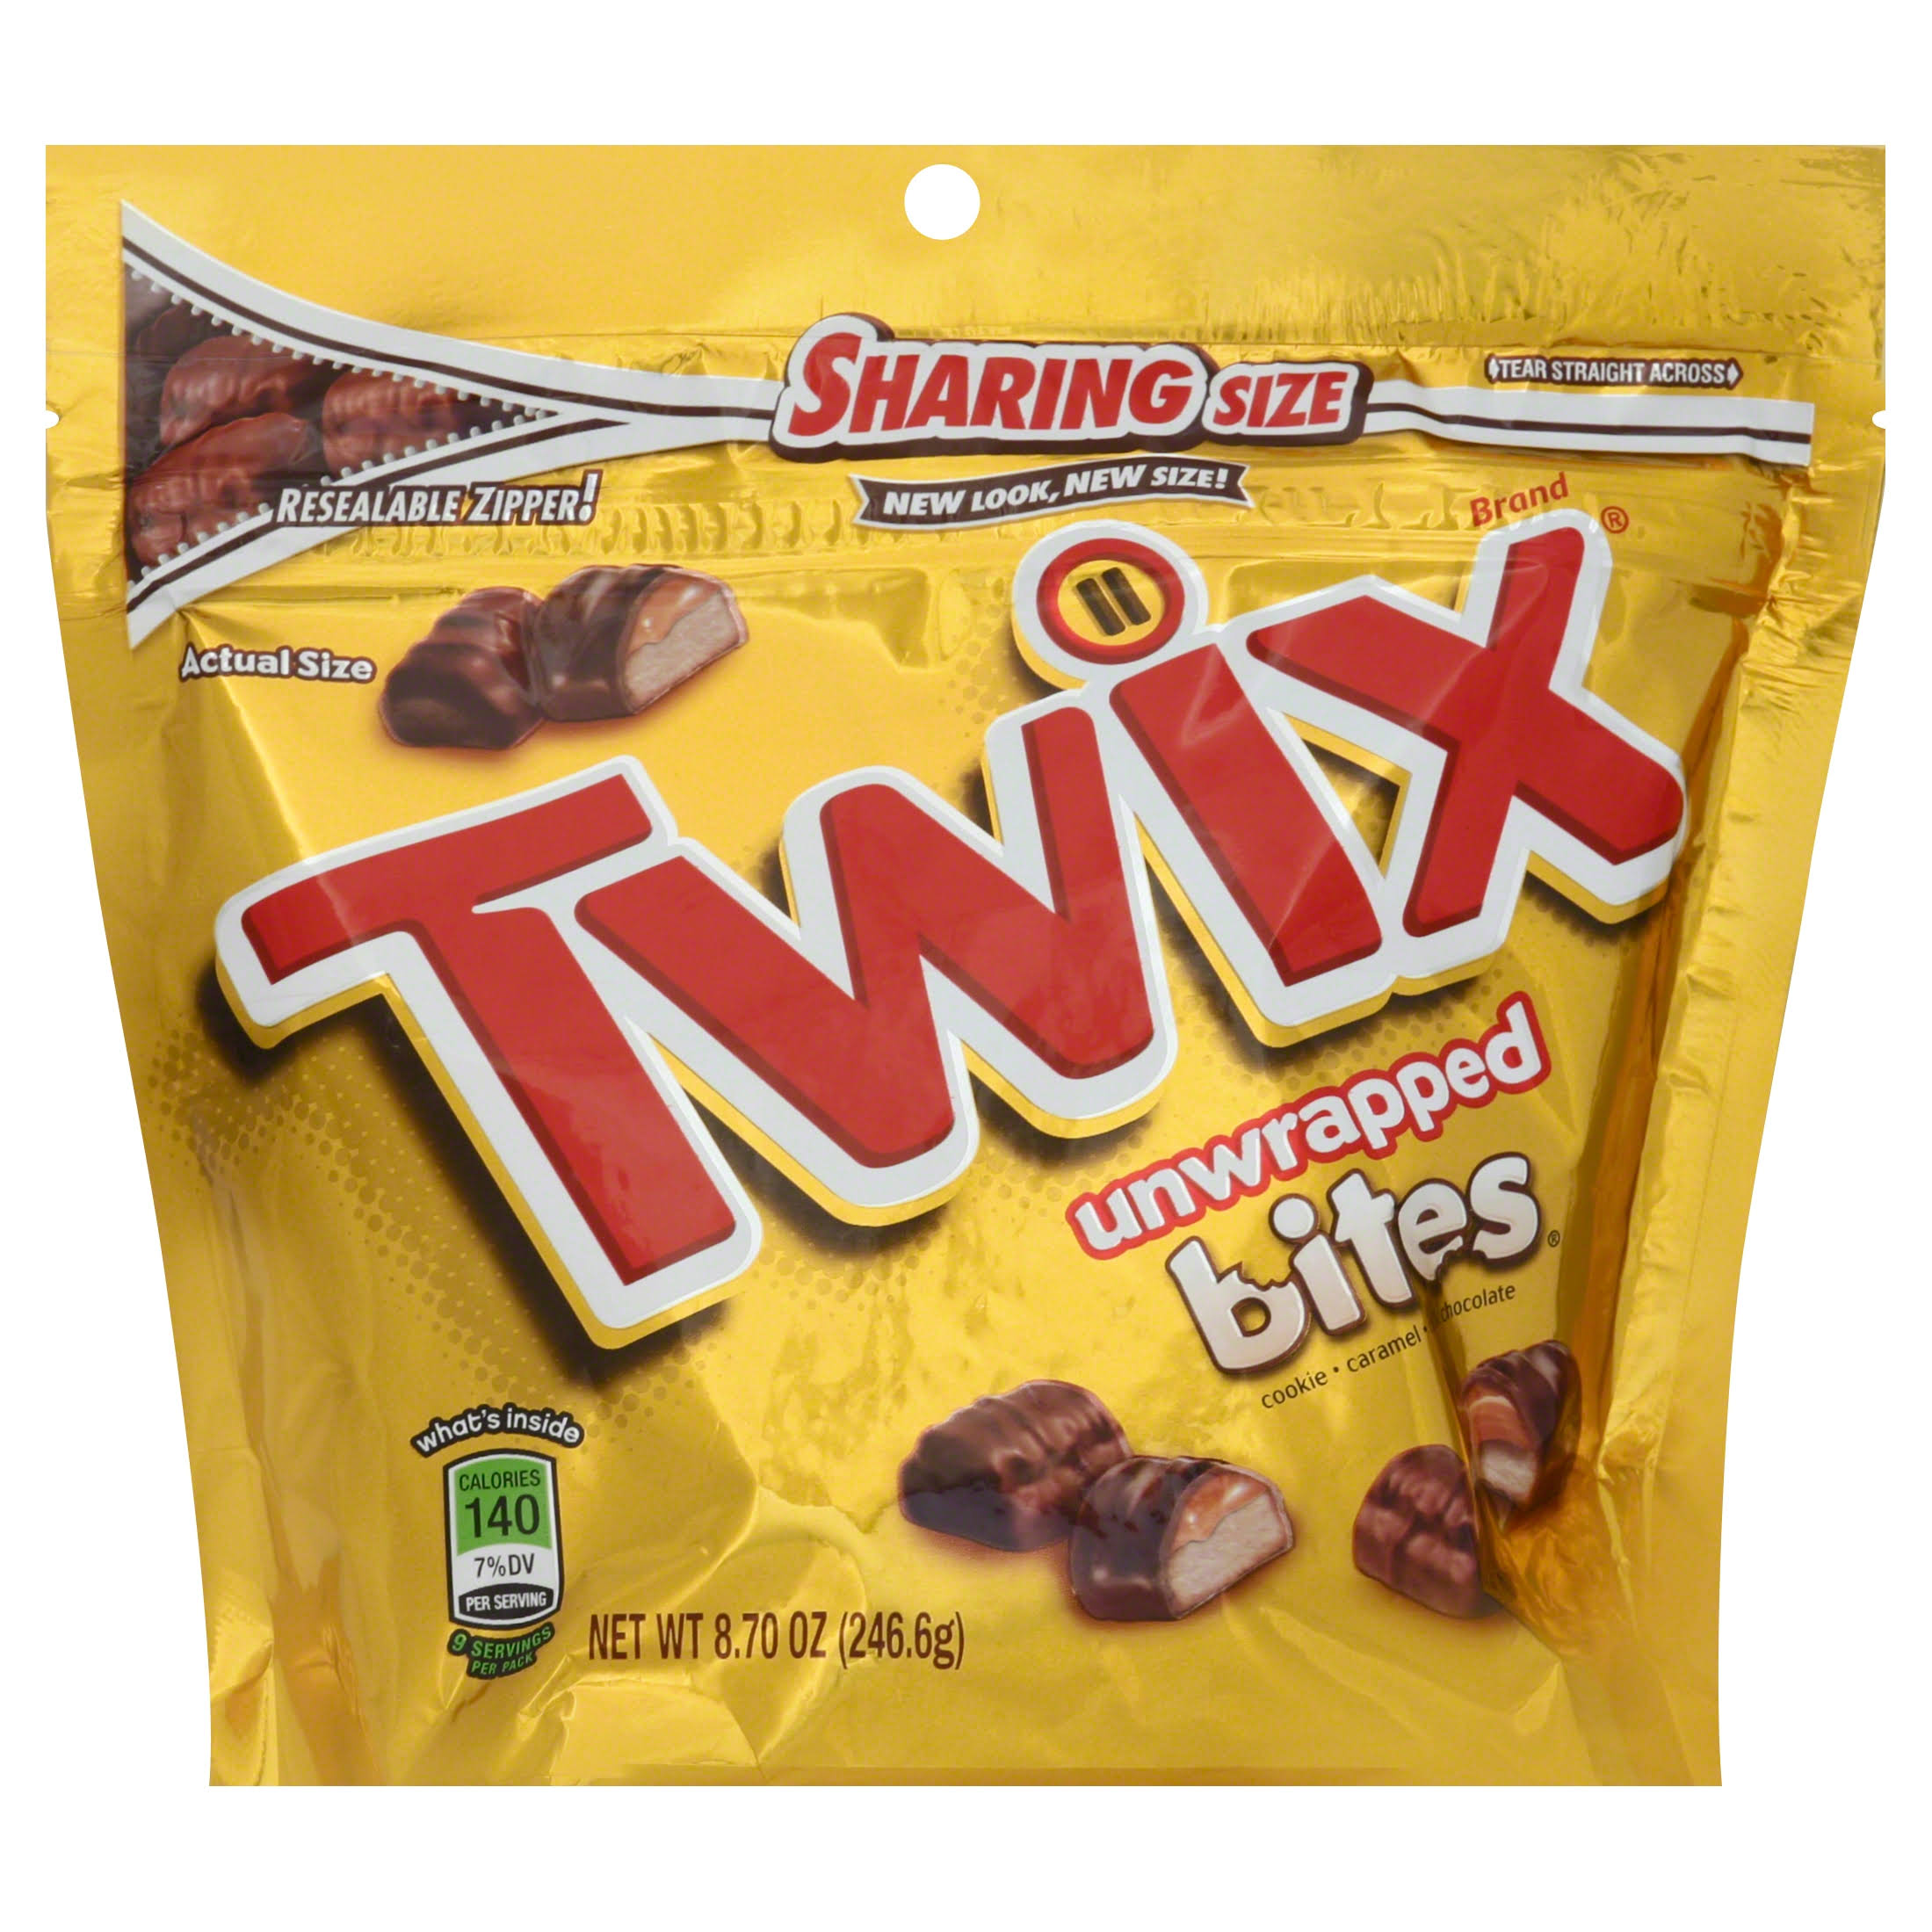 Twix Unwrapped Bites Sharing Size Candy - 8.7oz